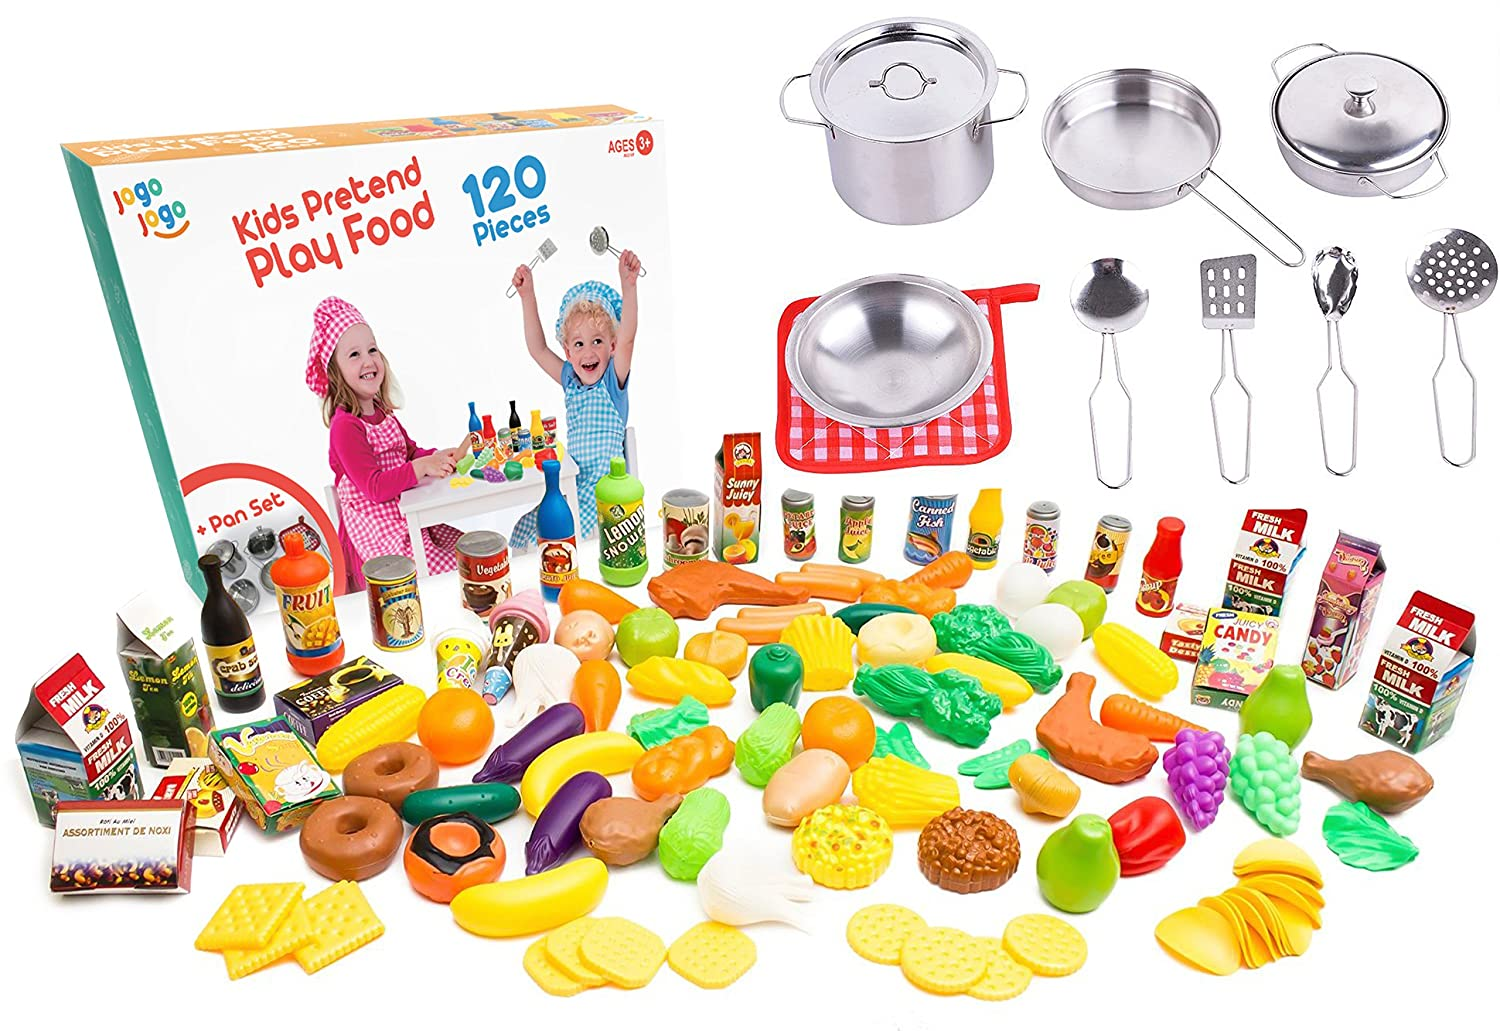 Kids Play Kitchen Accessories Sets Kids Pots And Pans Set With Plastic Food By Jogo Jogo Kitchen Sets Kids Play Food For Kids Kitchen Utensils Set